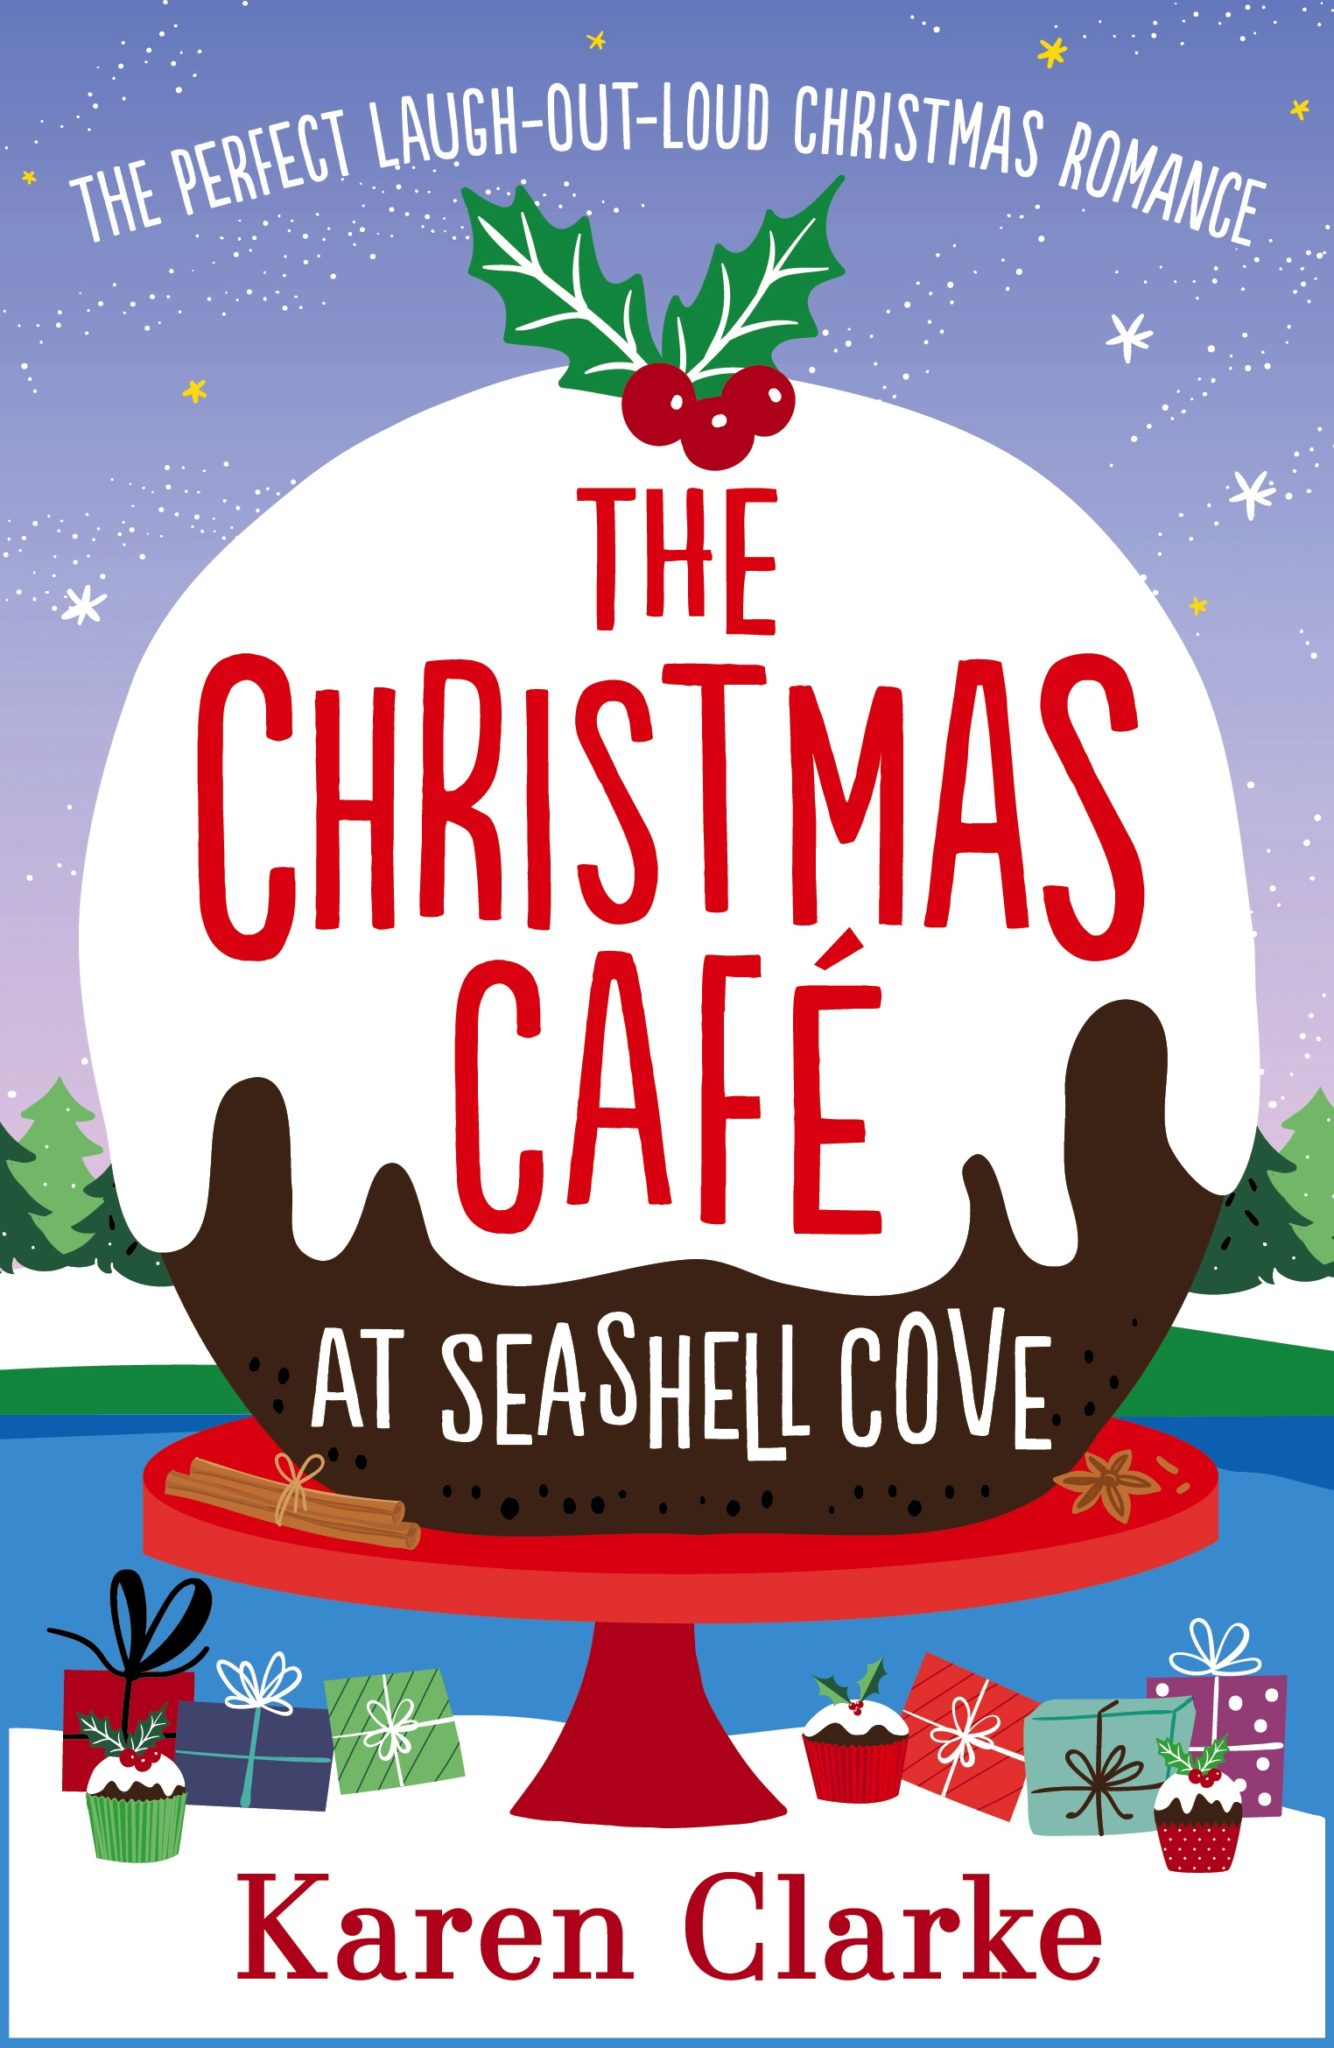 The Christmas Cafe at Seashell Cove by Karen Clarke